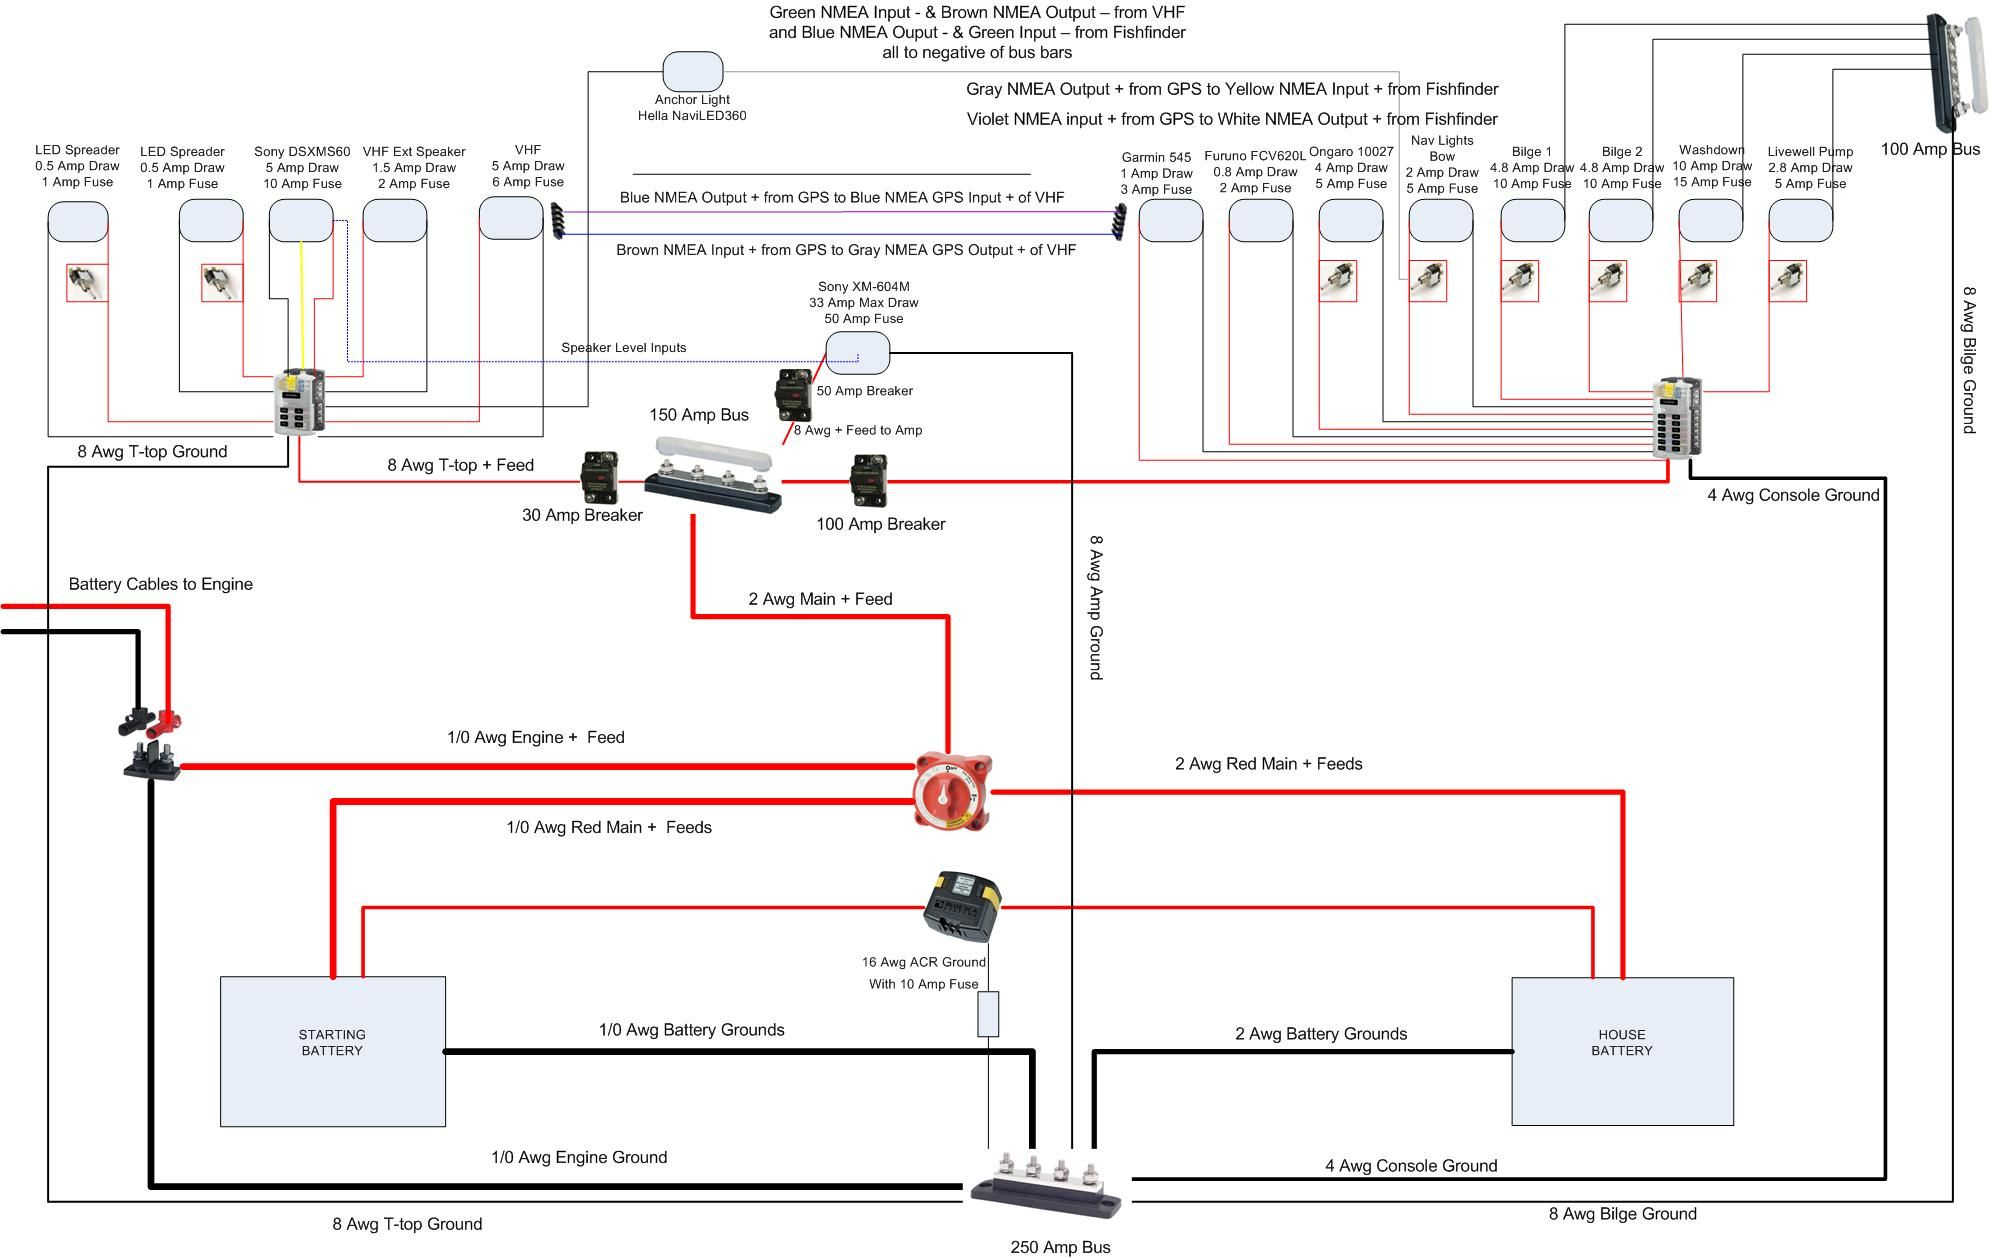 Simple To Read Wiring Diagram For A Boat | Boat - Boat Wiring Diagram